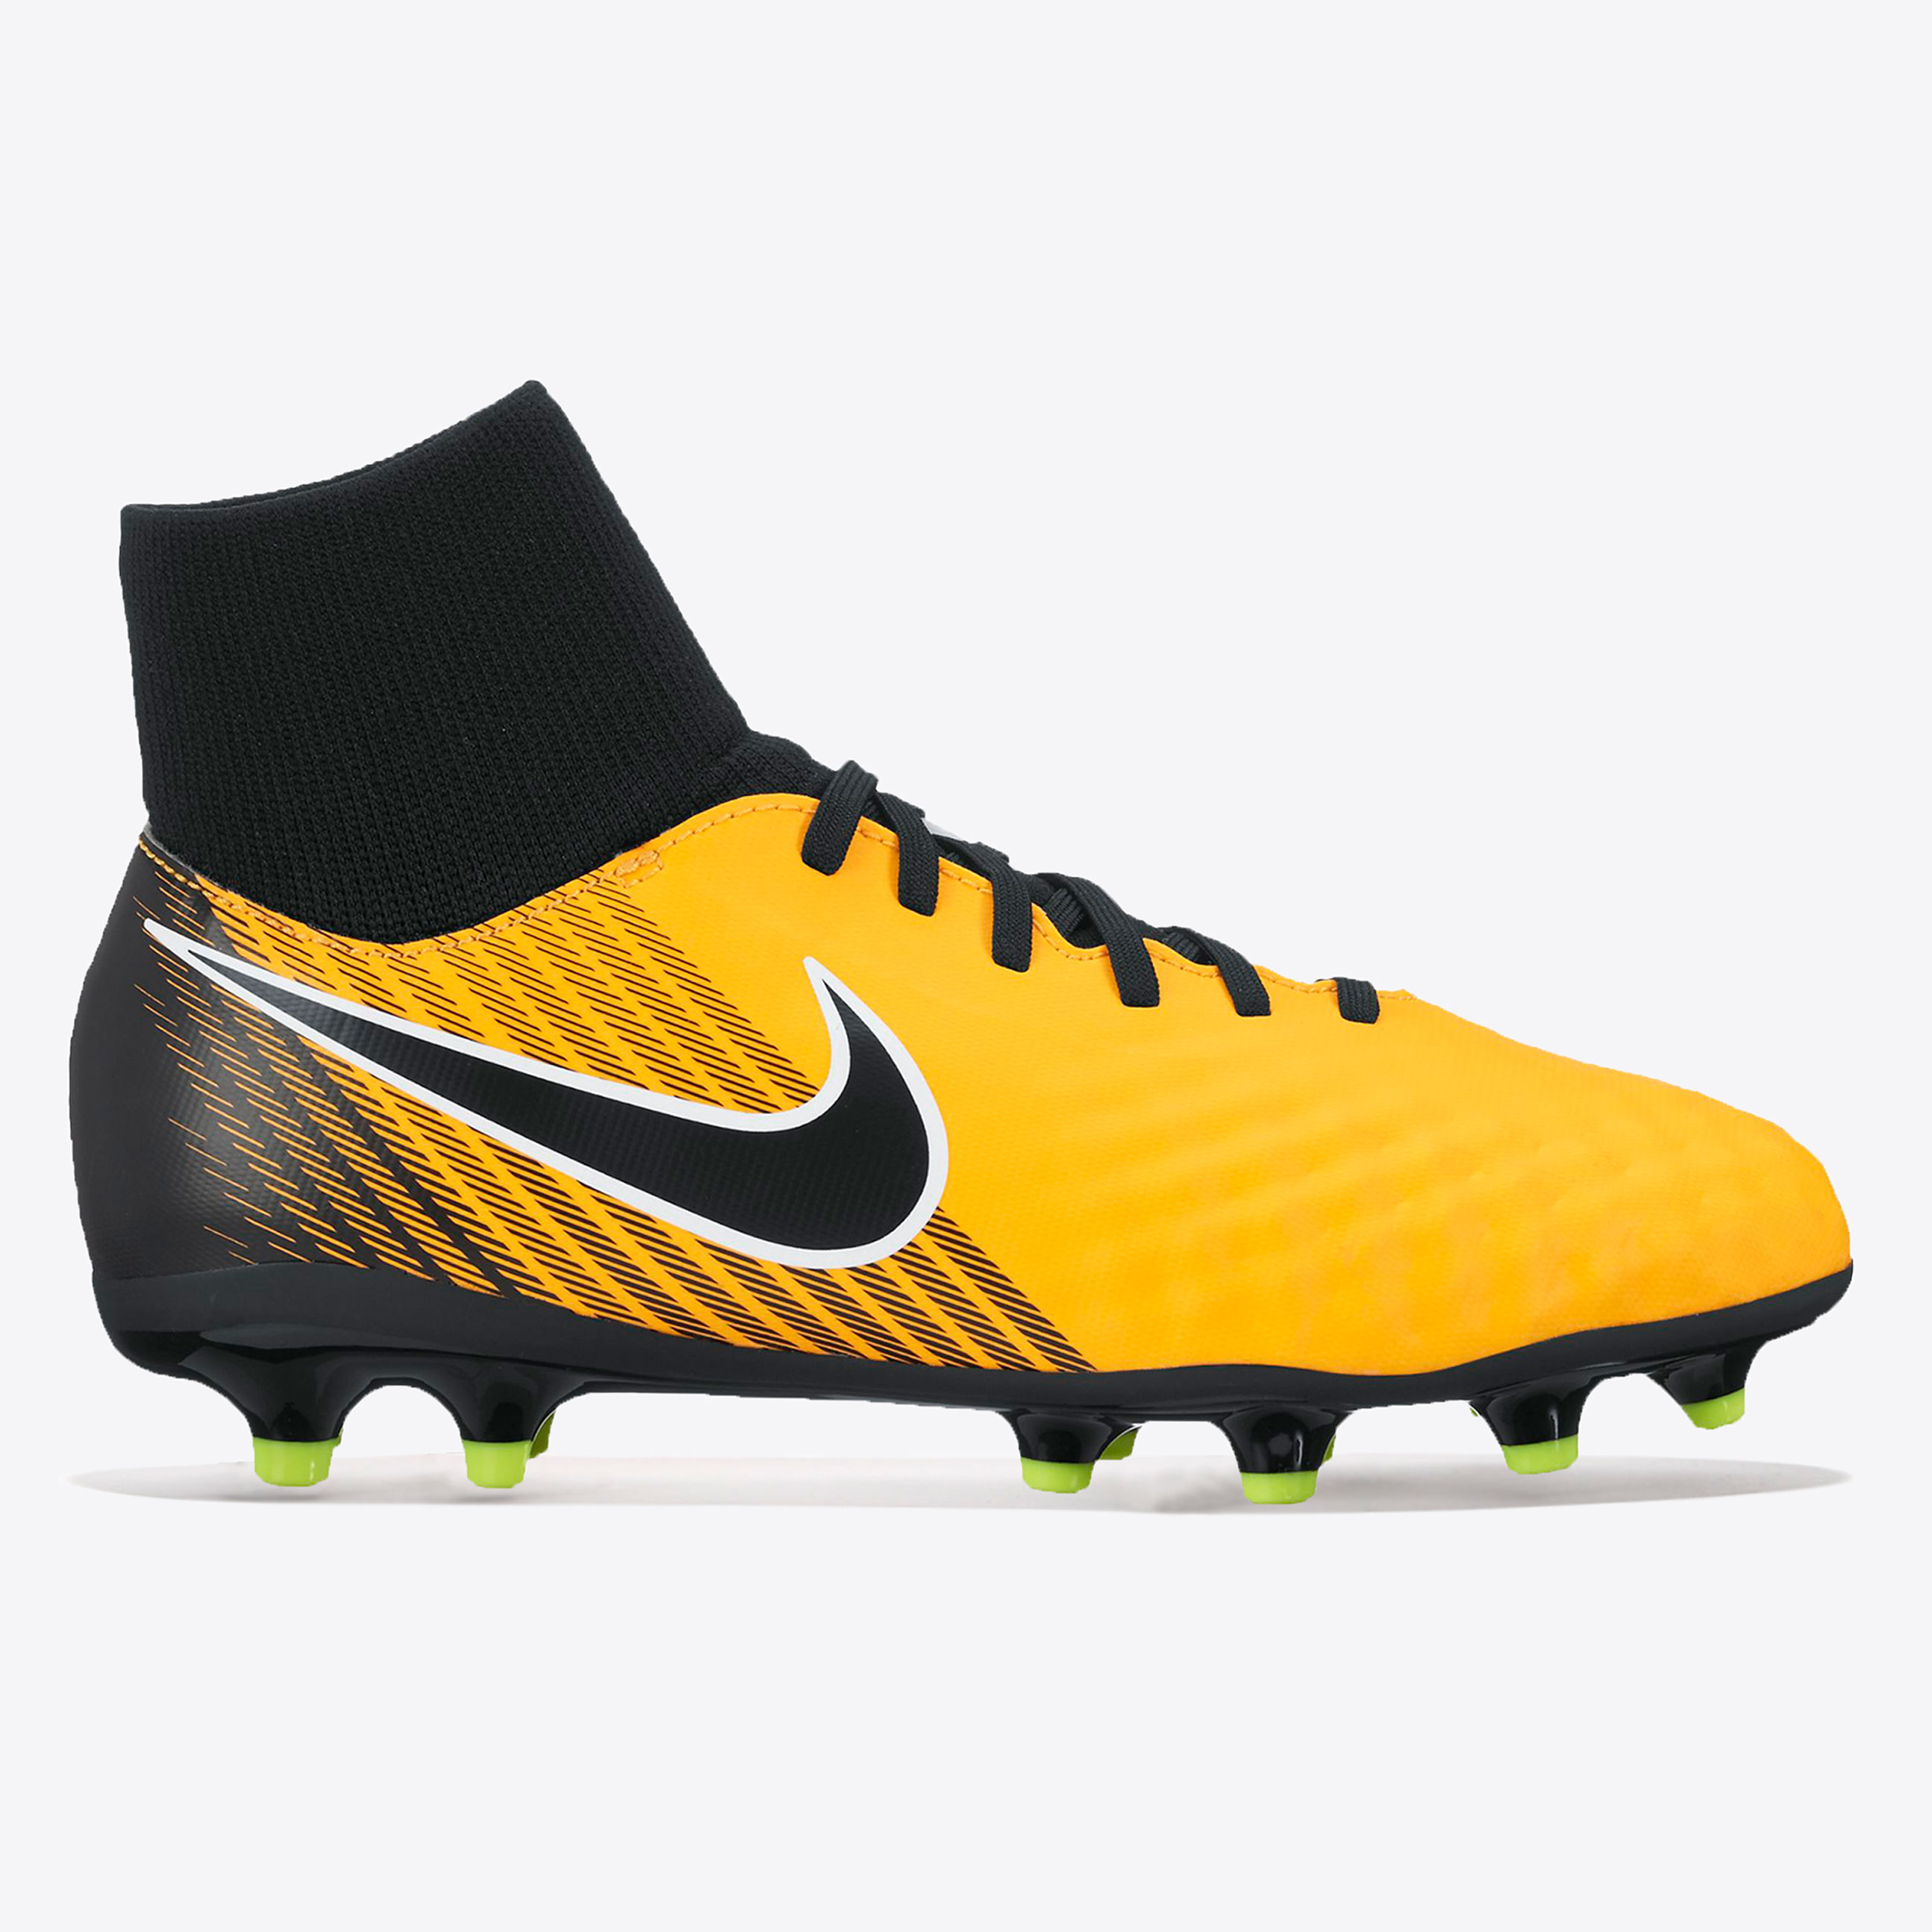 Nike Magista Onda II Dynamic Fit Firm Ground Football Boots - Laser Or